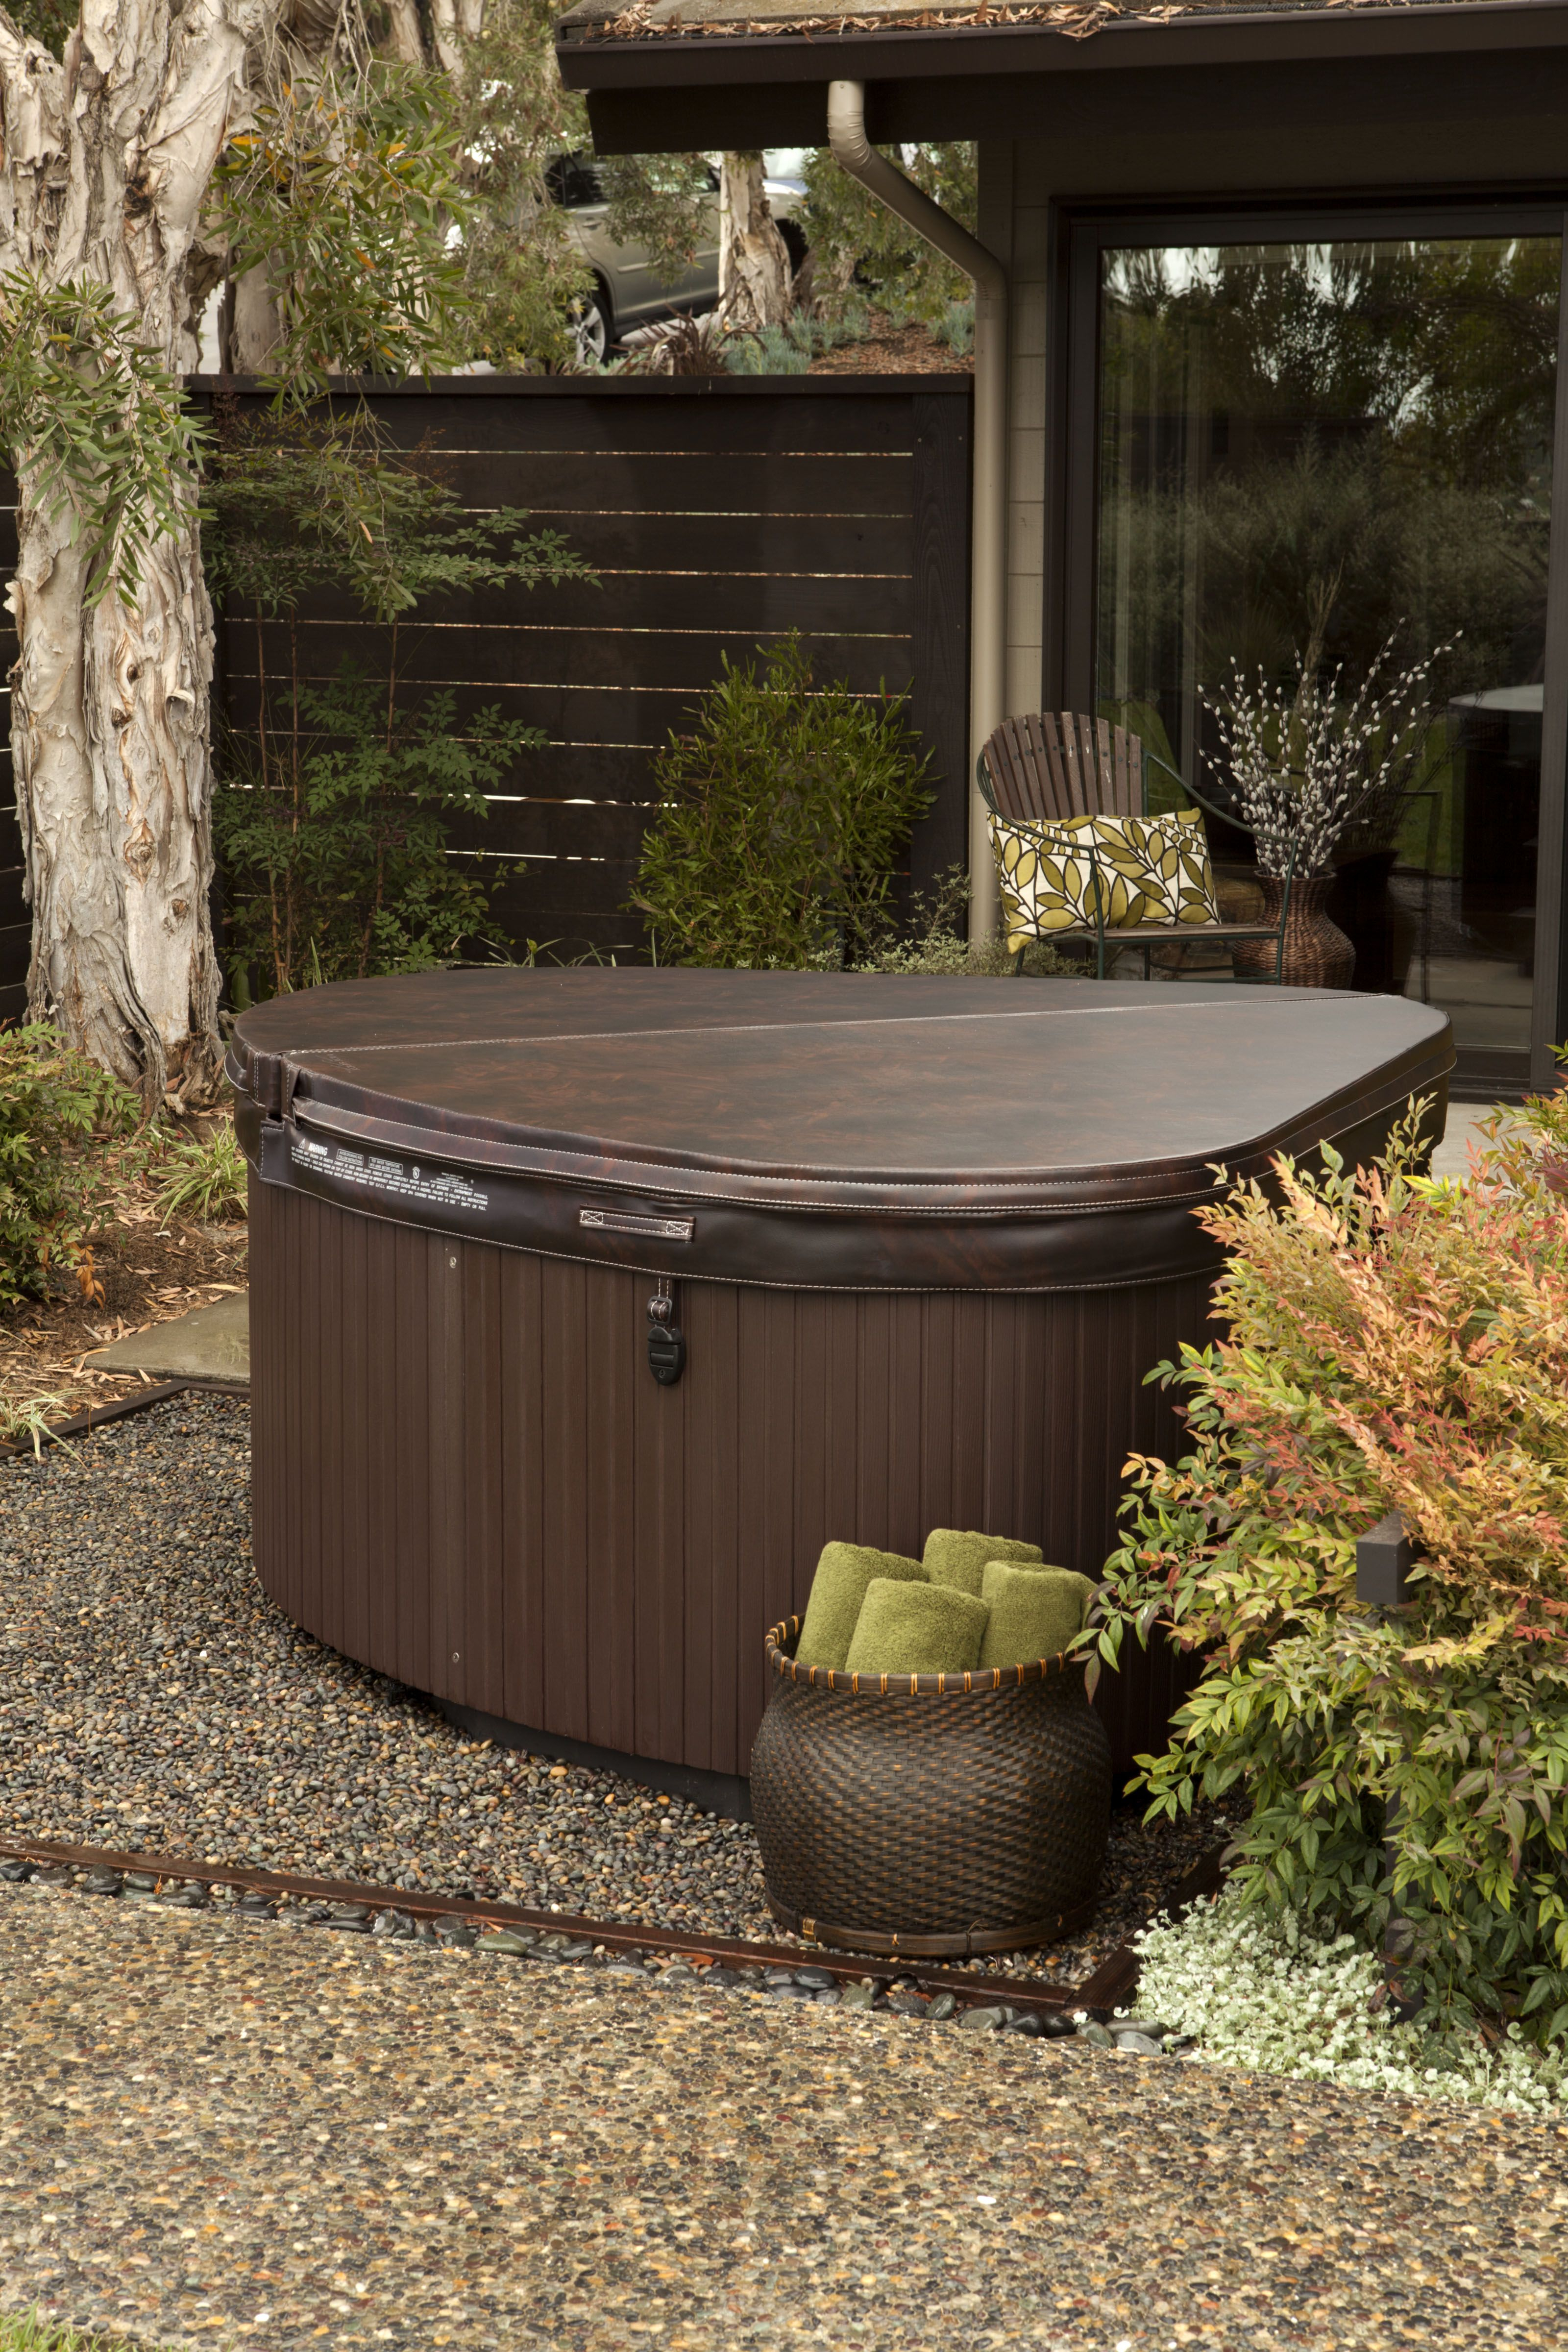 The Perfect Hot Tub For A Small Backyard Invest In Wellness And pertaining to 11 Some of the Coolest Designs of How to Makeover Hot Tub Backyard Ideas